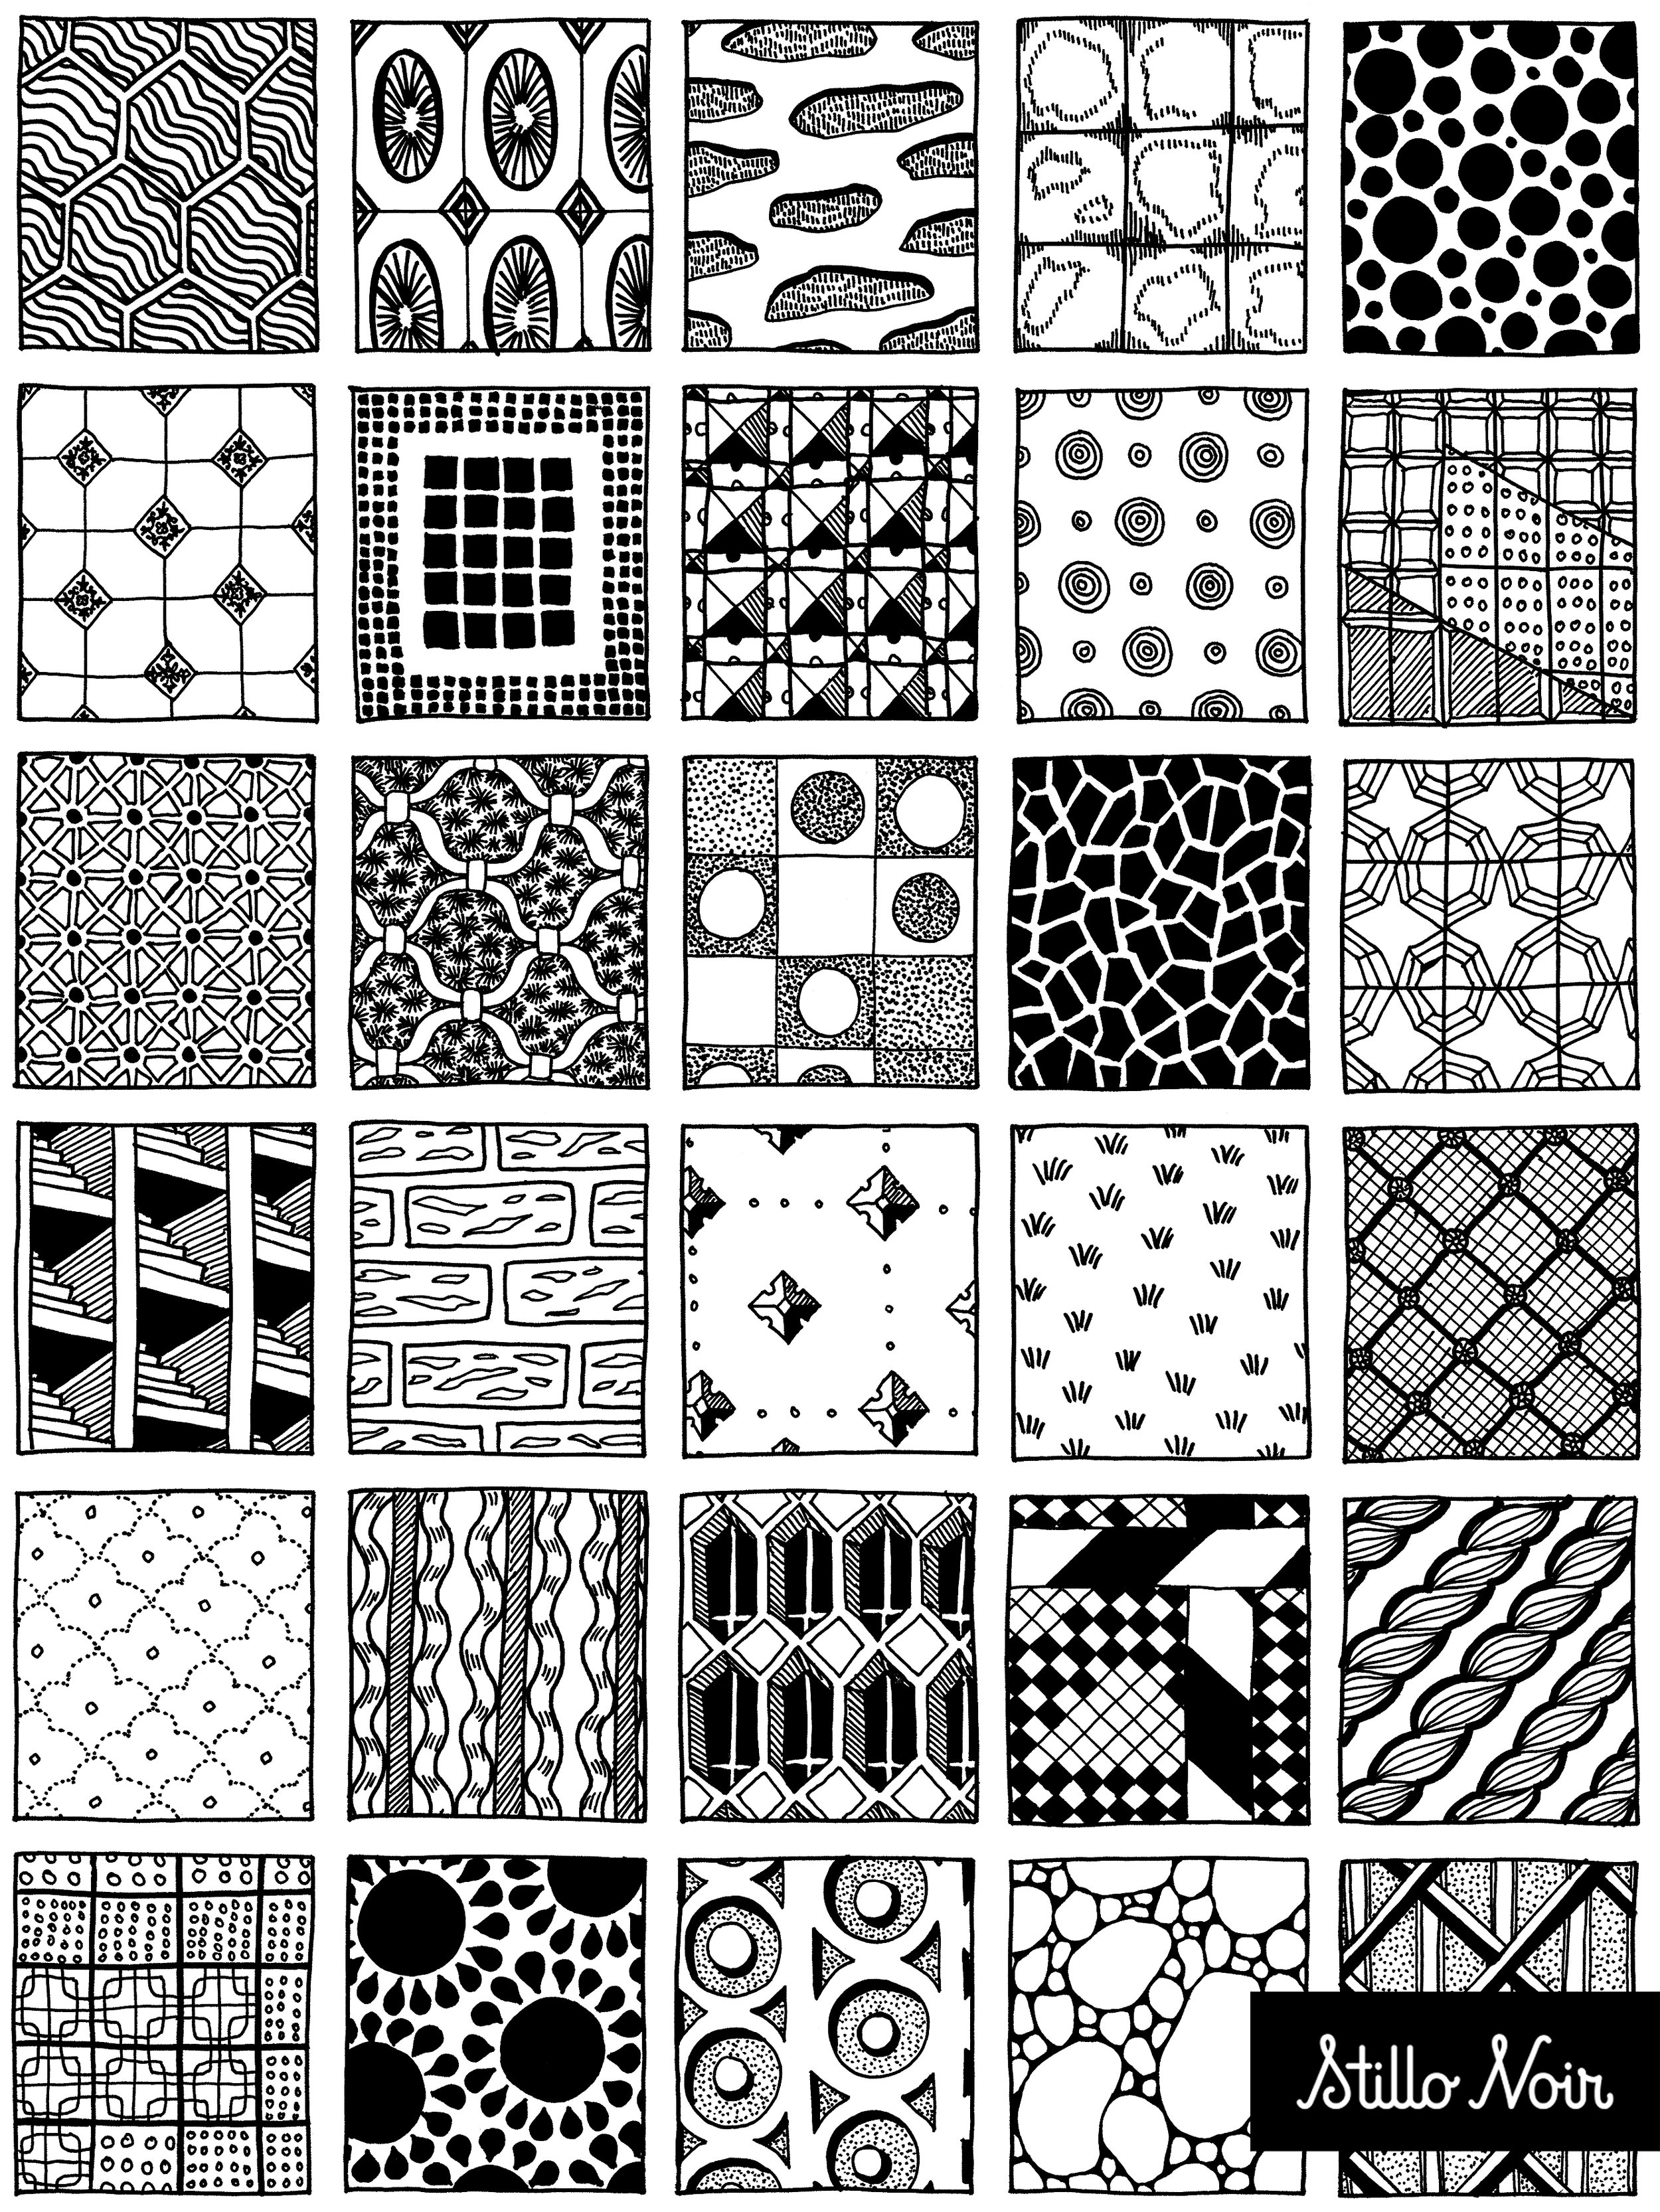 valencia_pattern_collection1_300_logo.jpg